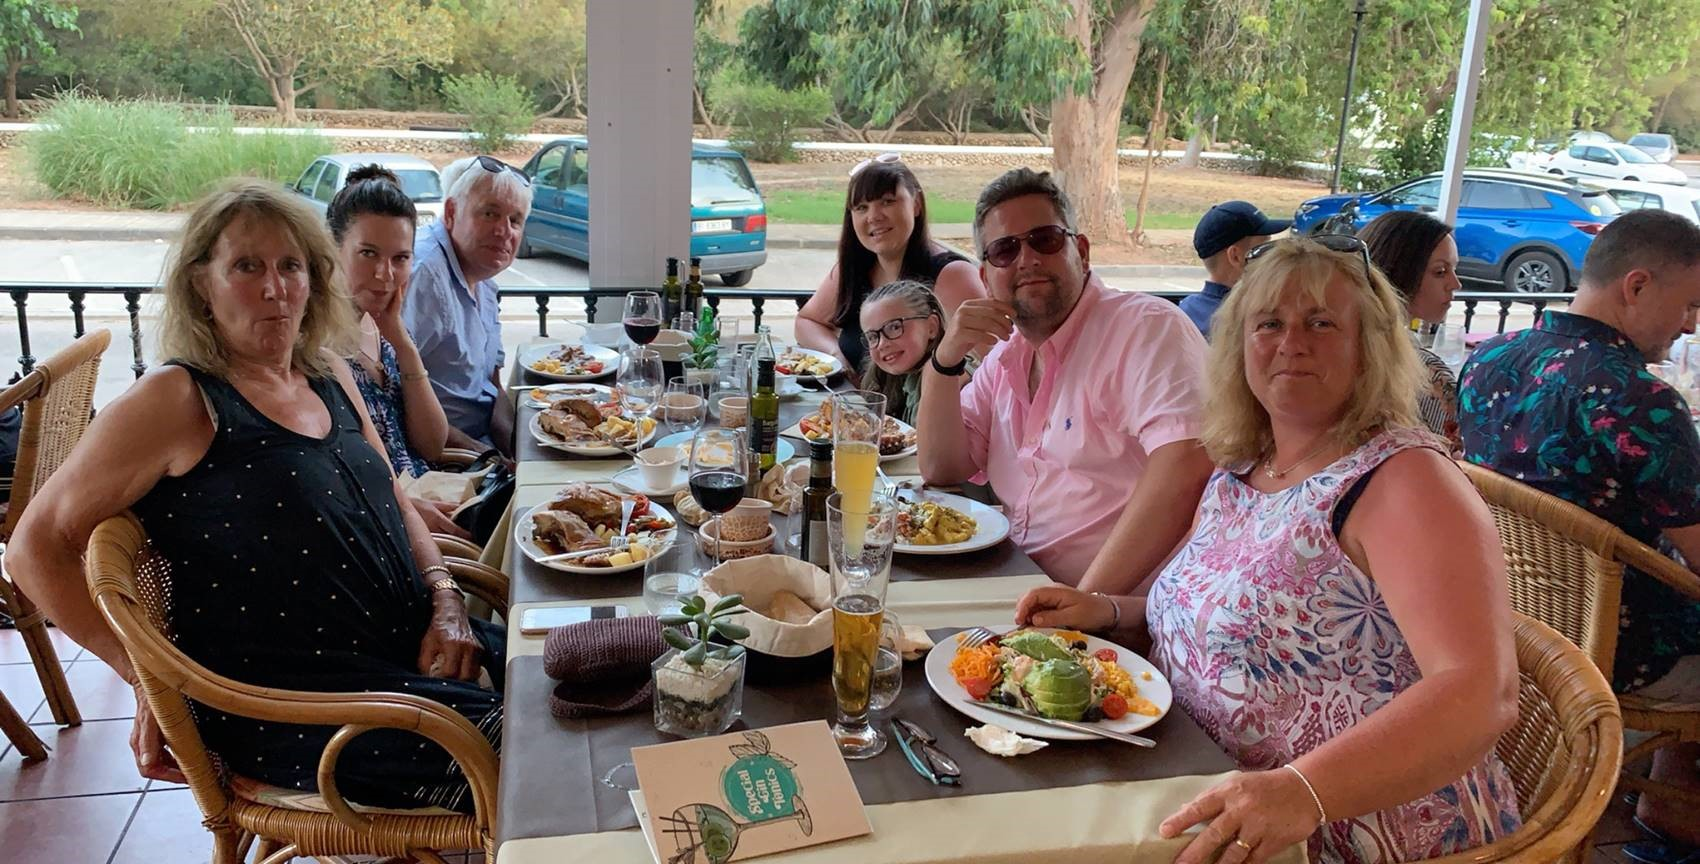 Jonny and his family enjoying a meal out in Menorca